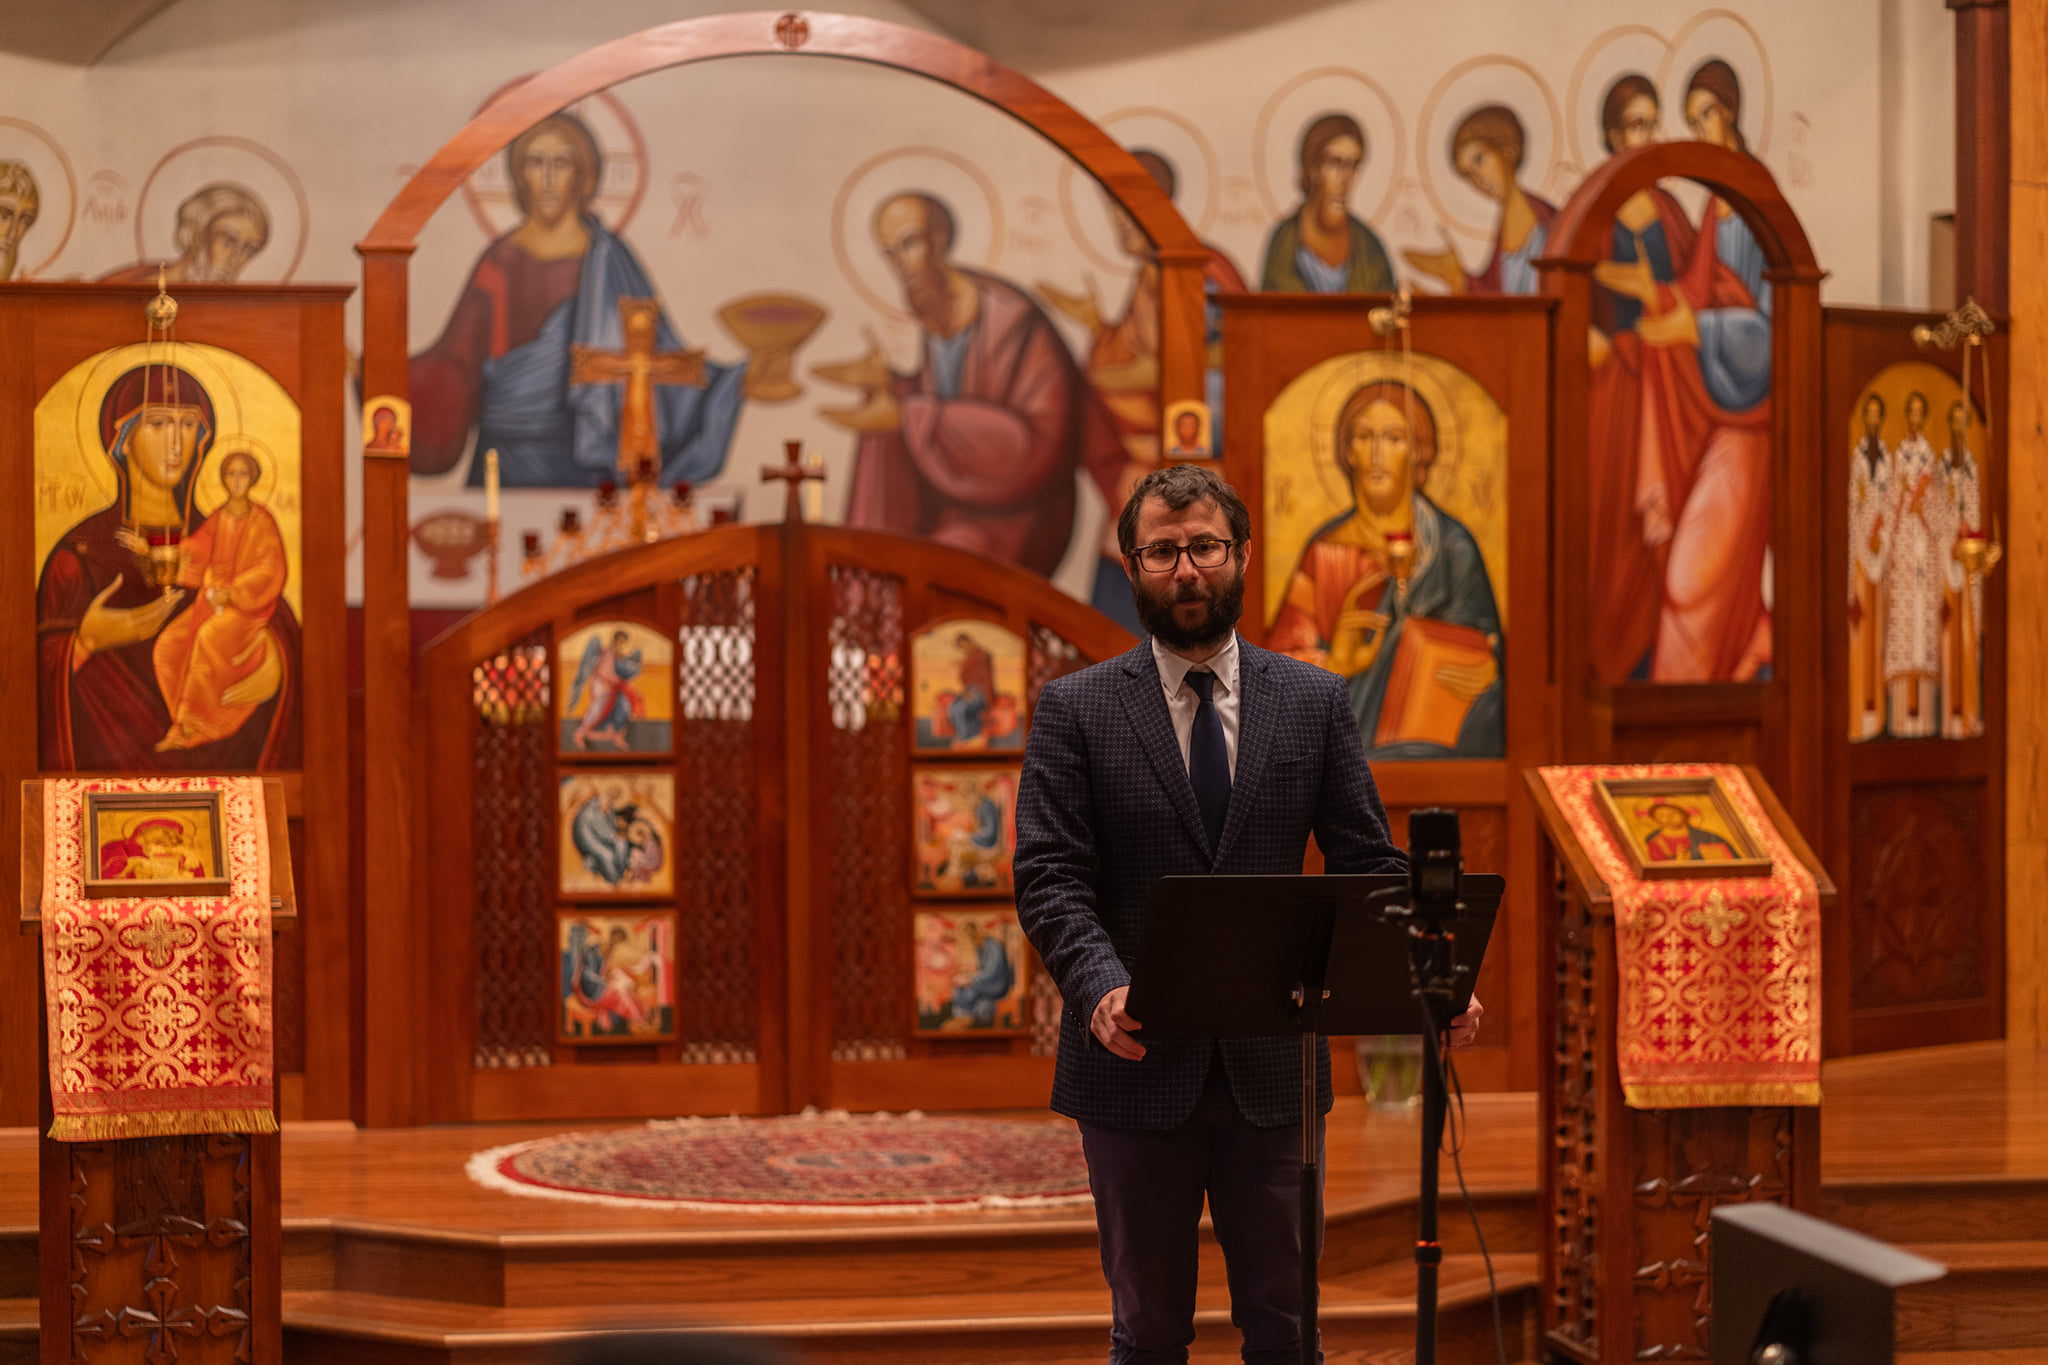 Scenes from Tronos Psaltic Group Performance